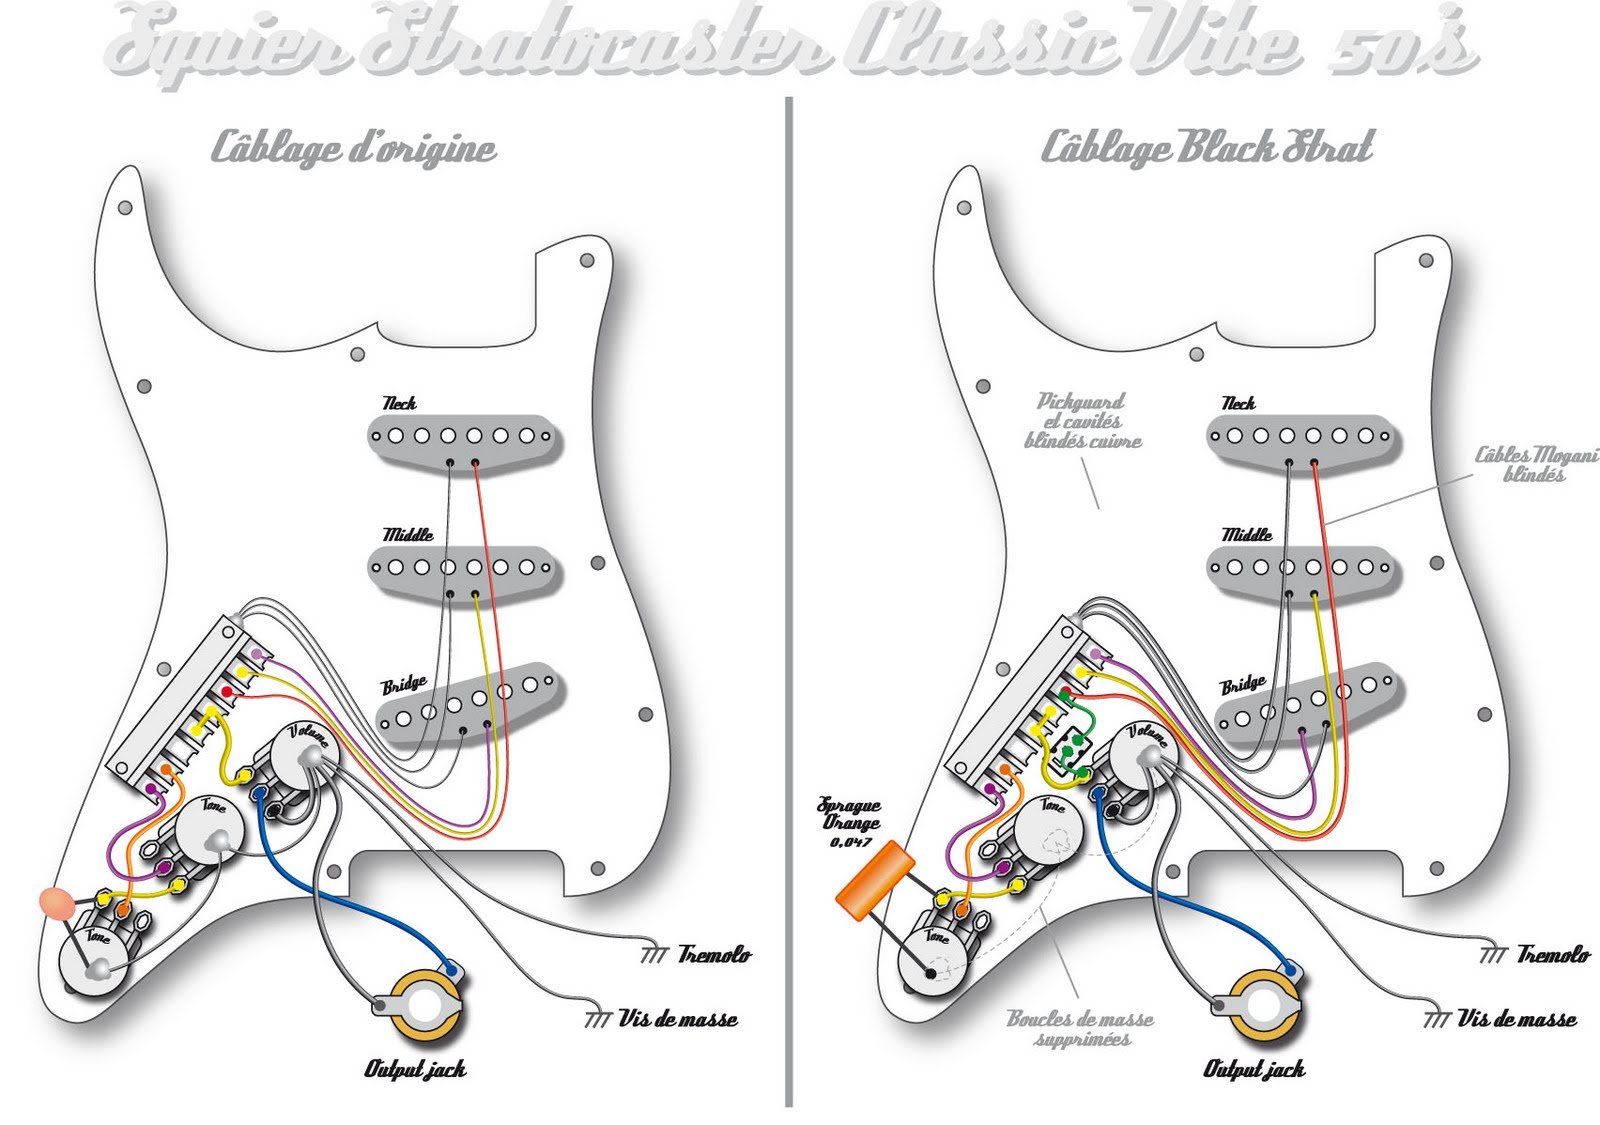 Strat Gilmour Emg Wiring Diagram Opinions About Stratocaster Mods Briggs Stratton Engines V Twin Get Free Image David